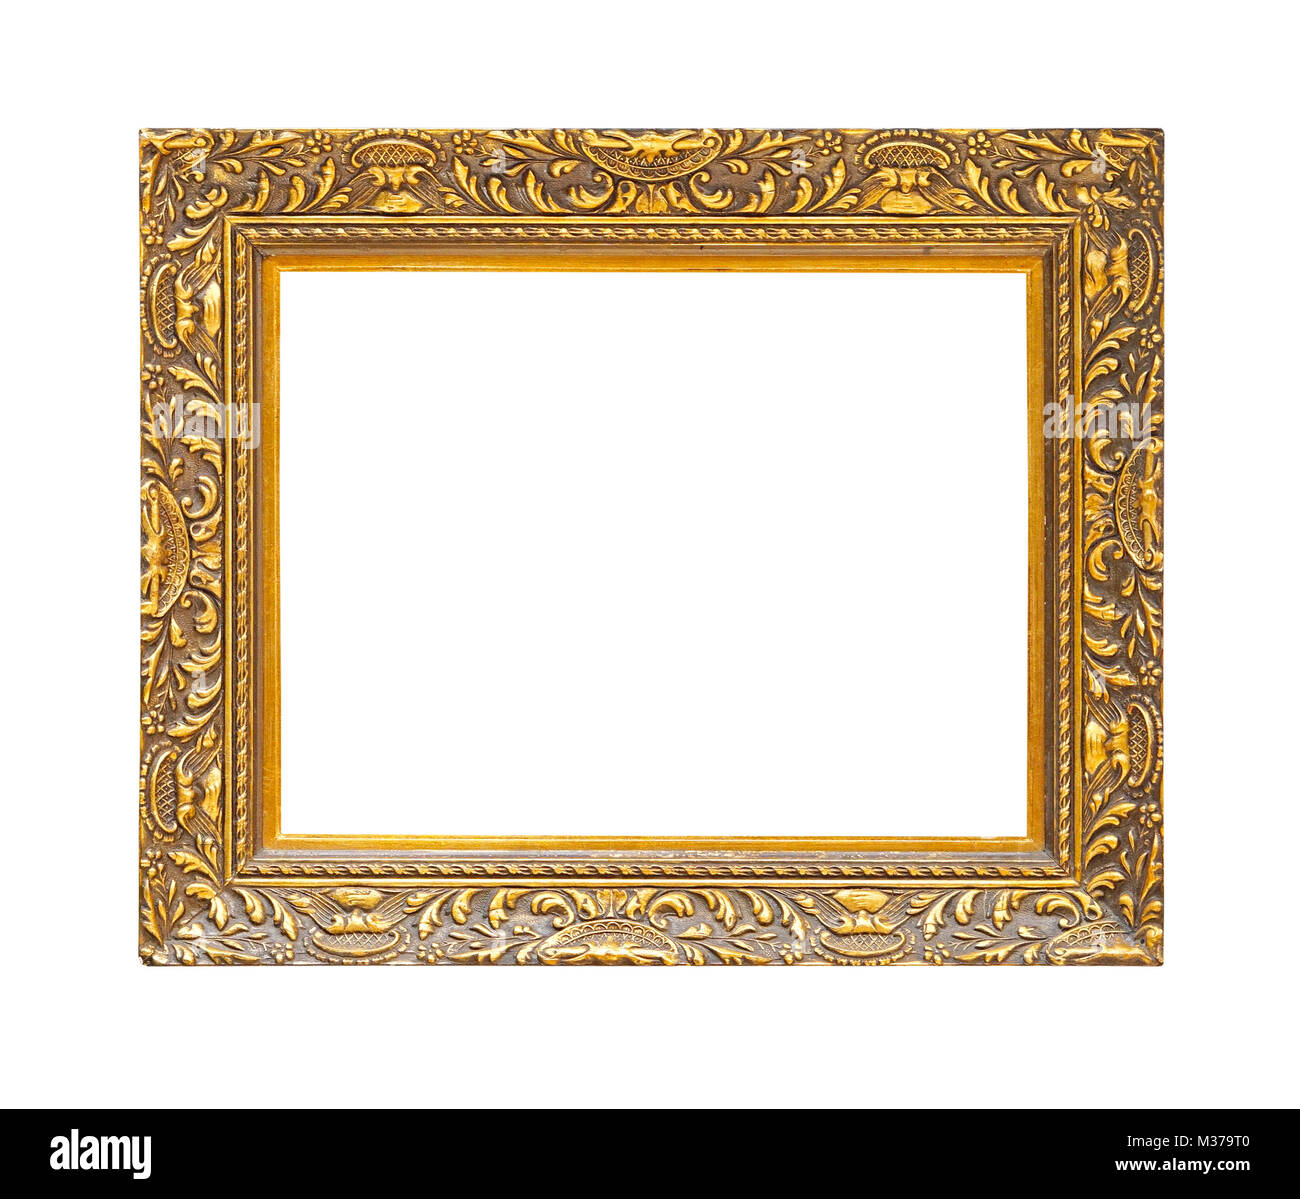 a506ff677d4d Rustic Gold Frame Isolated On White Stock Photo 174109040 Alamy